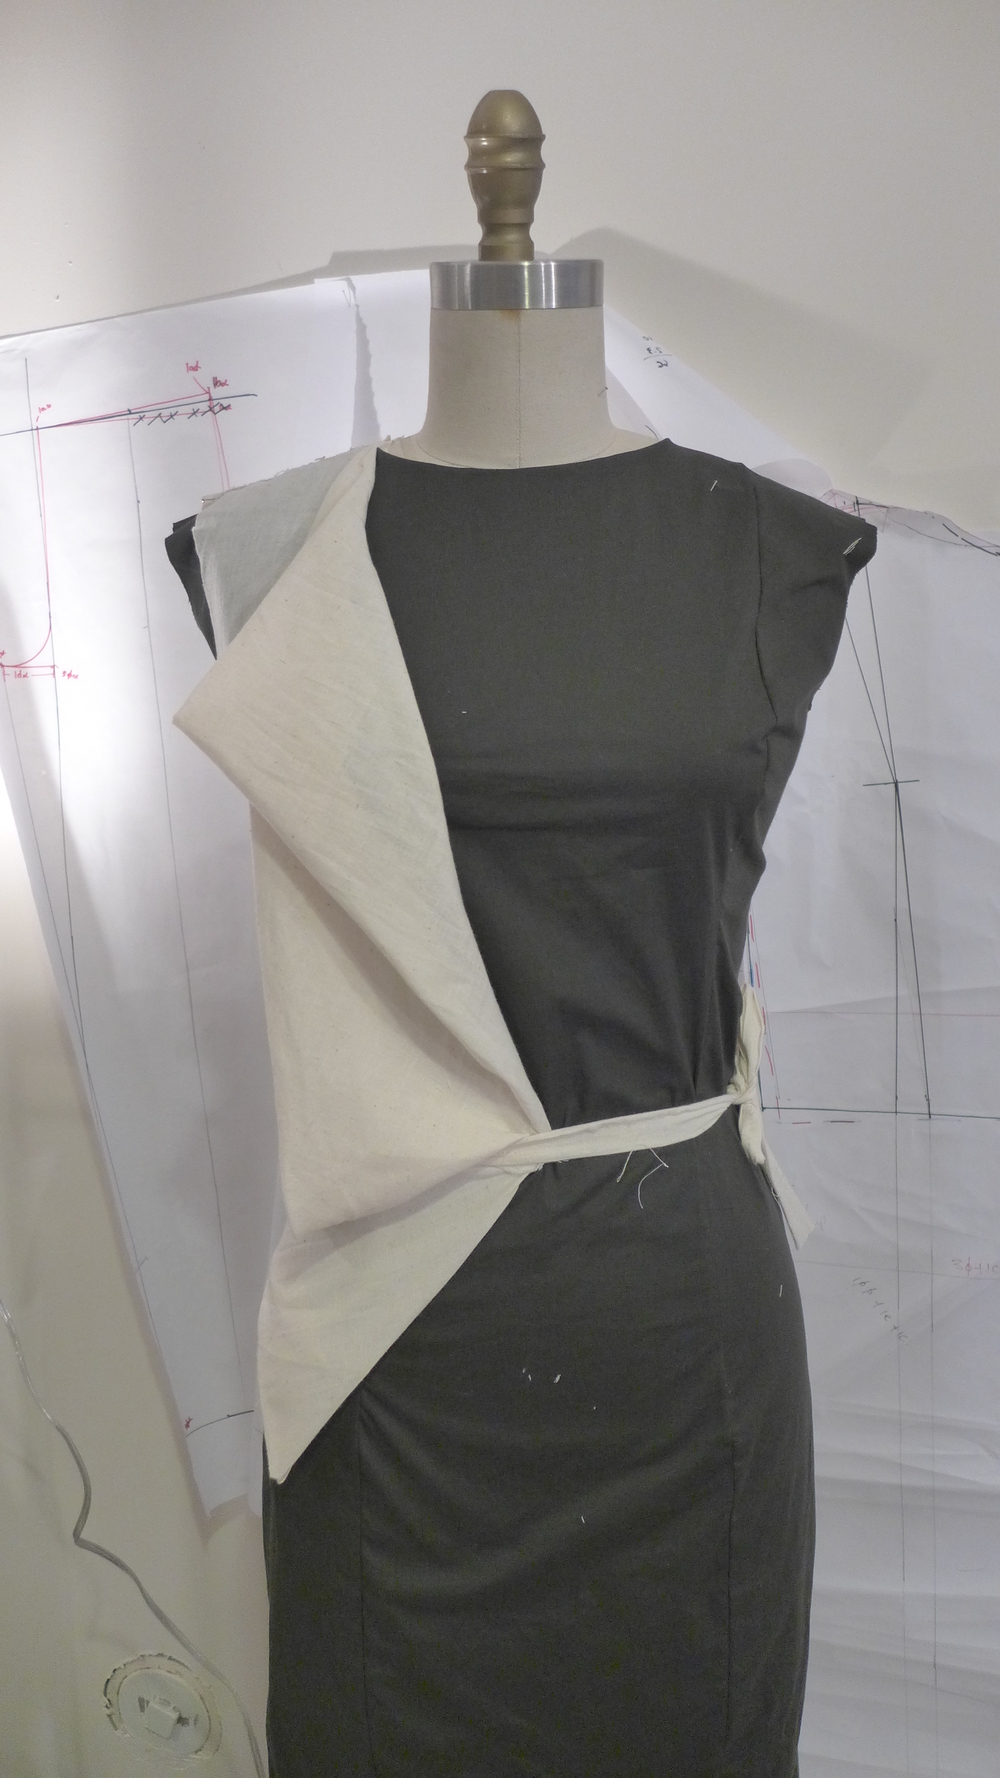 I helped the designers sew up muslins for the next collection and observed their unique draping methods.